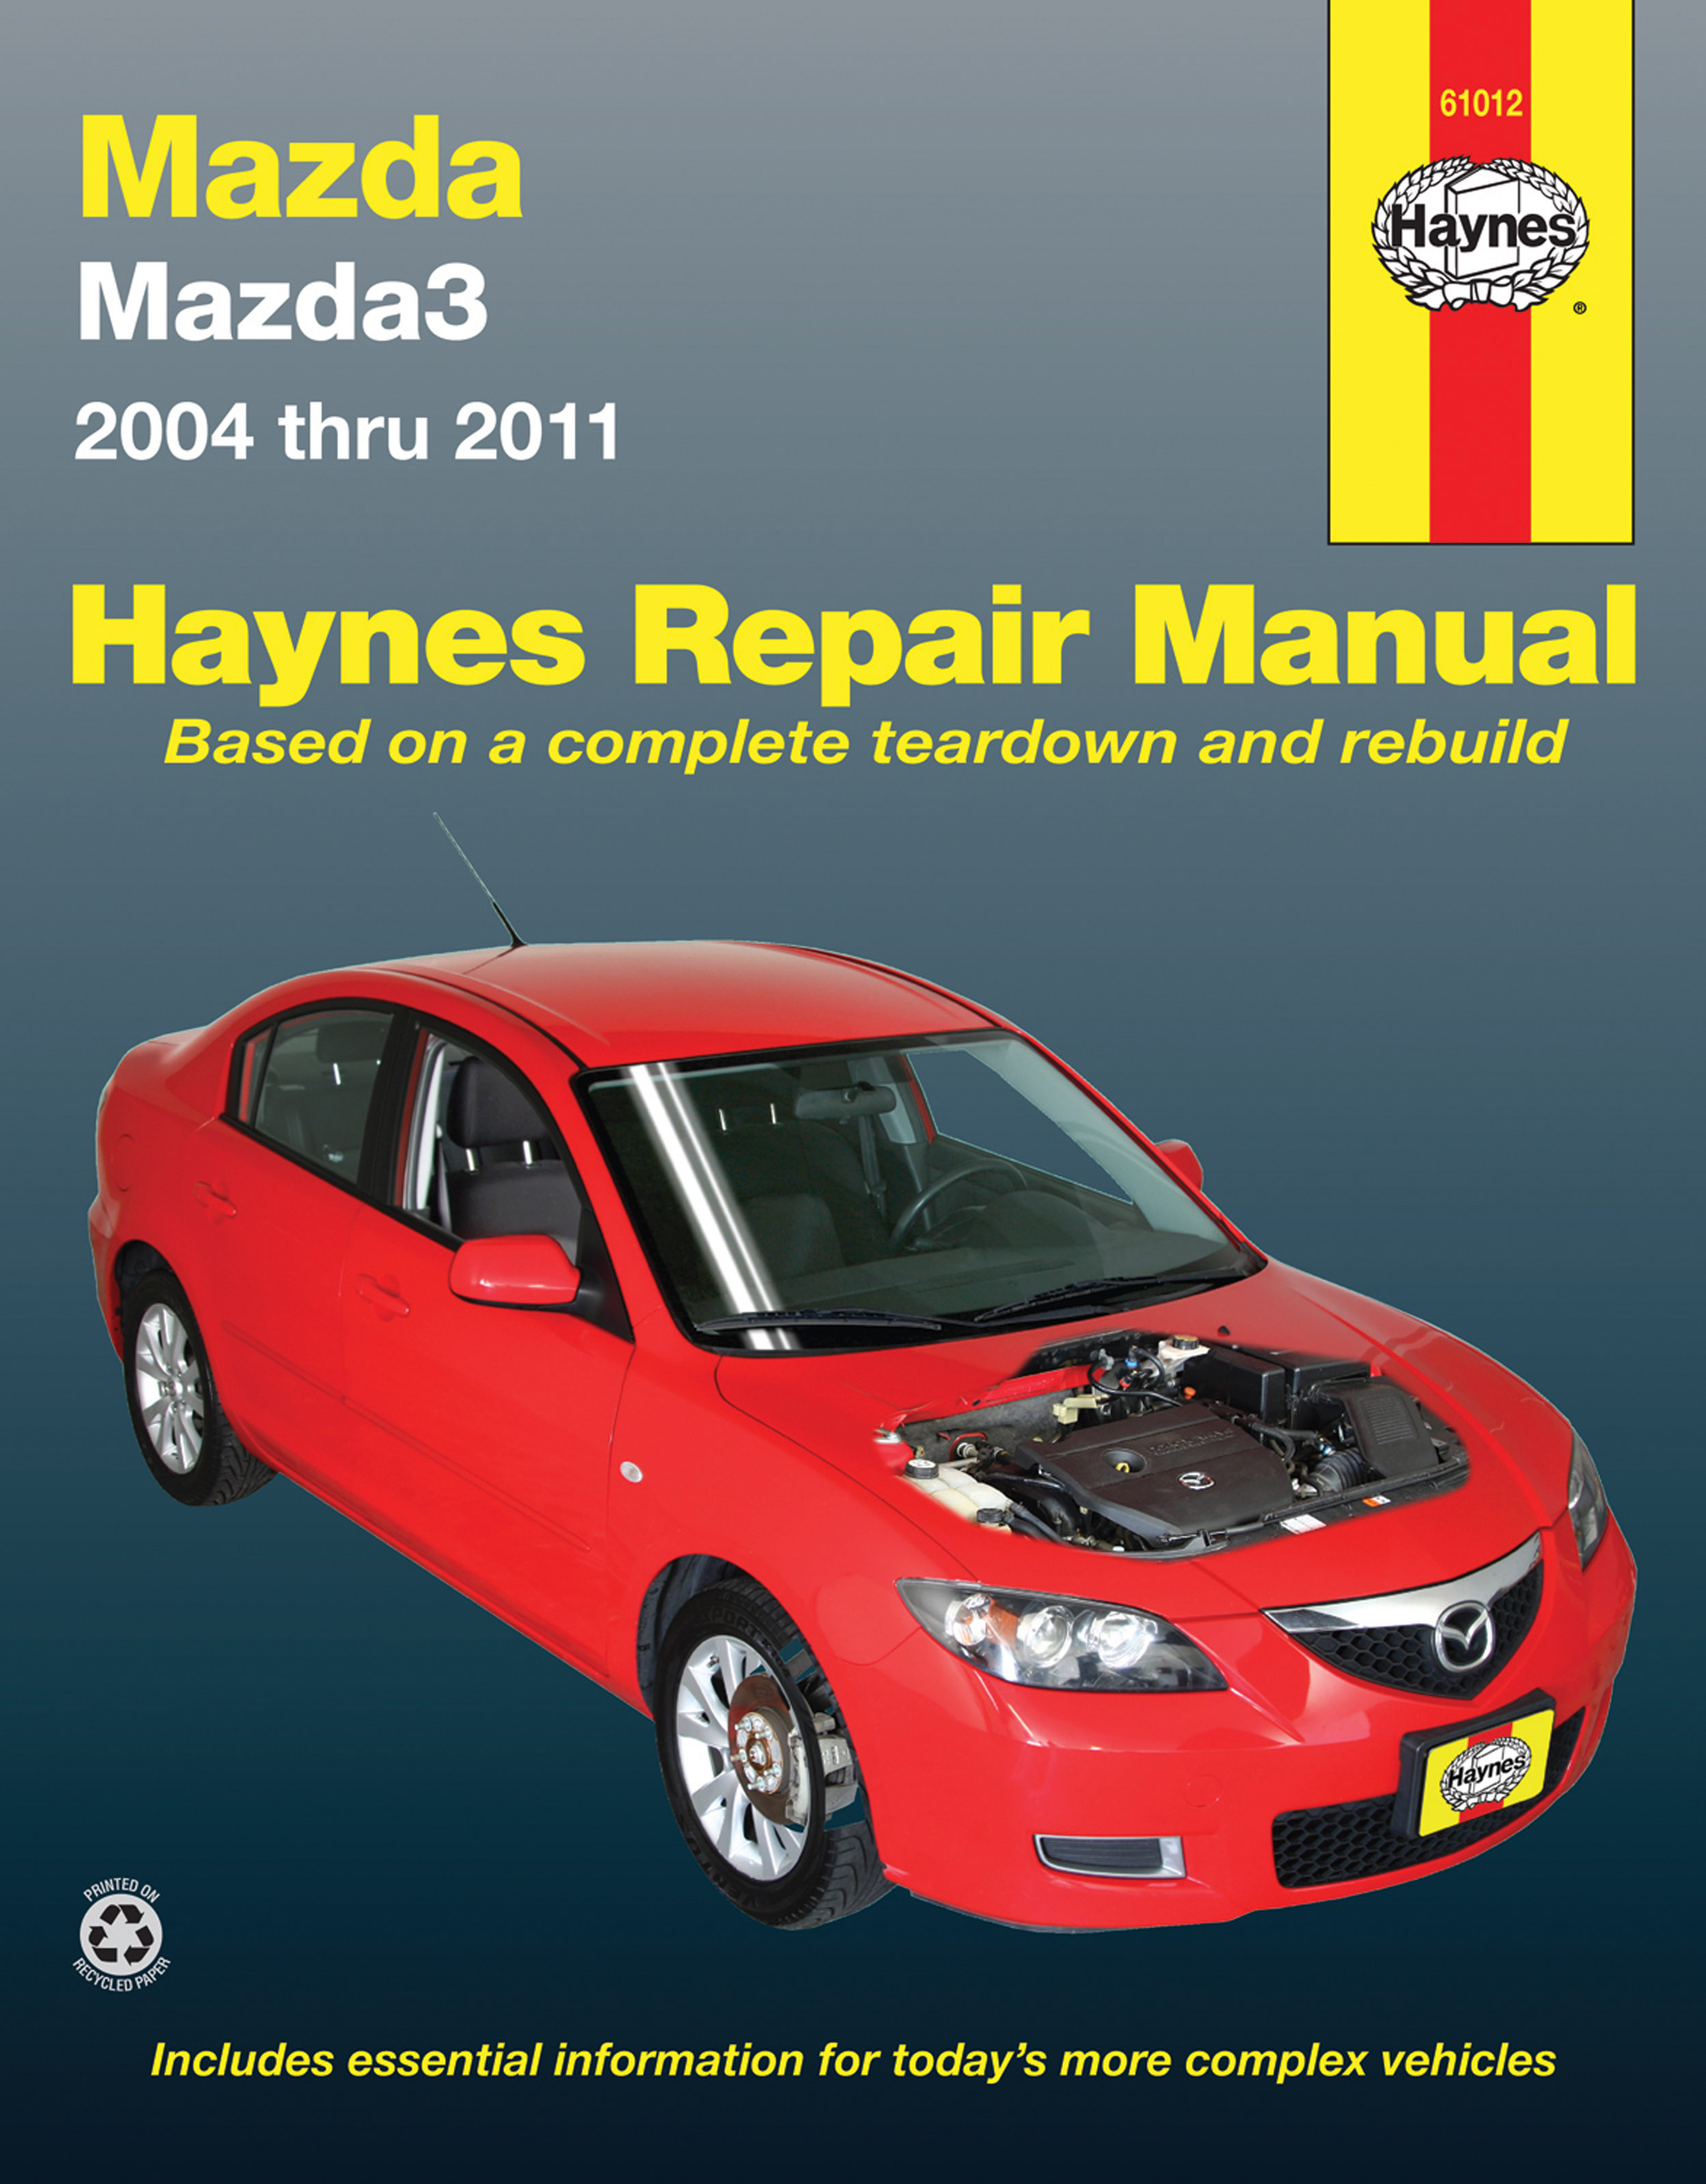 mazda 2009 3 owners manual daily instruction manual guides u2022 rh testingwordpress co 2011 Mazdaspeed 3 2009 Mazdaspeed 3 Turbo